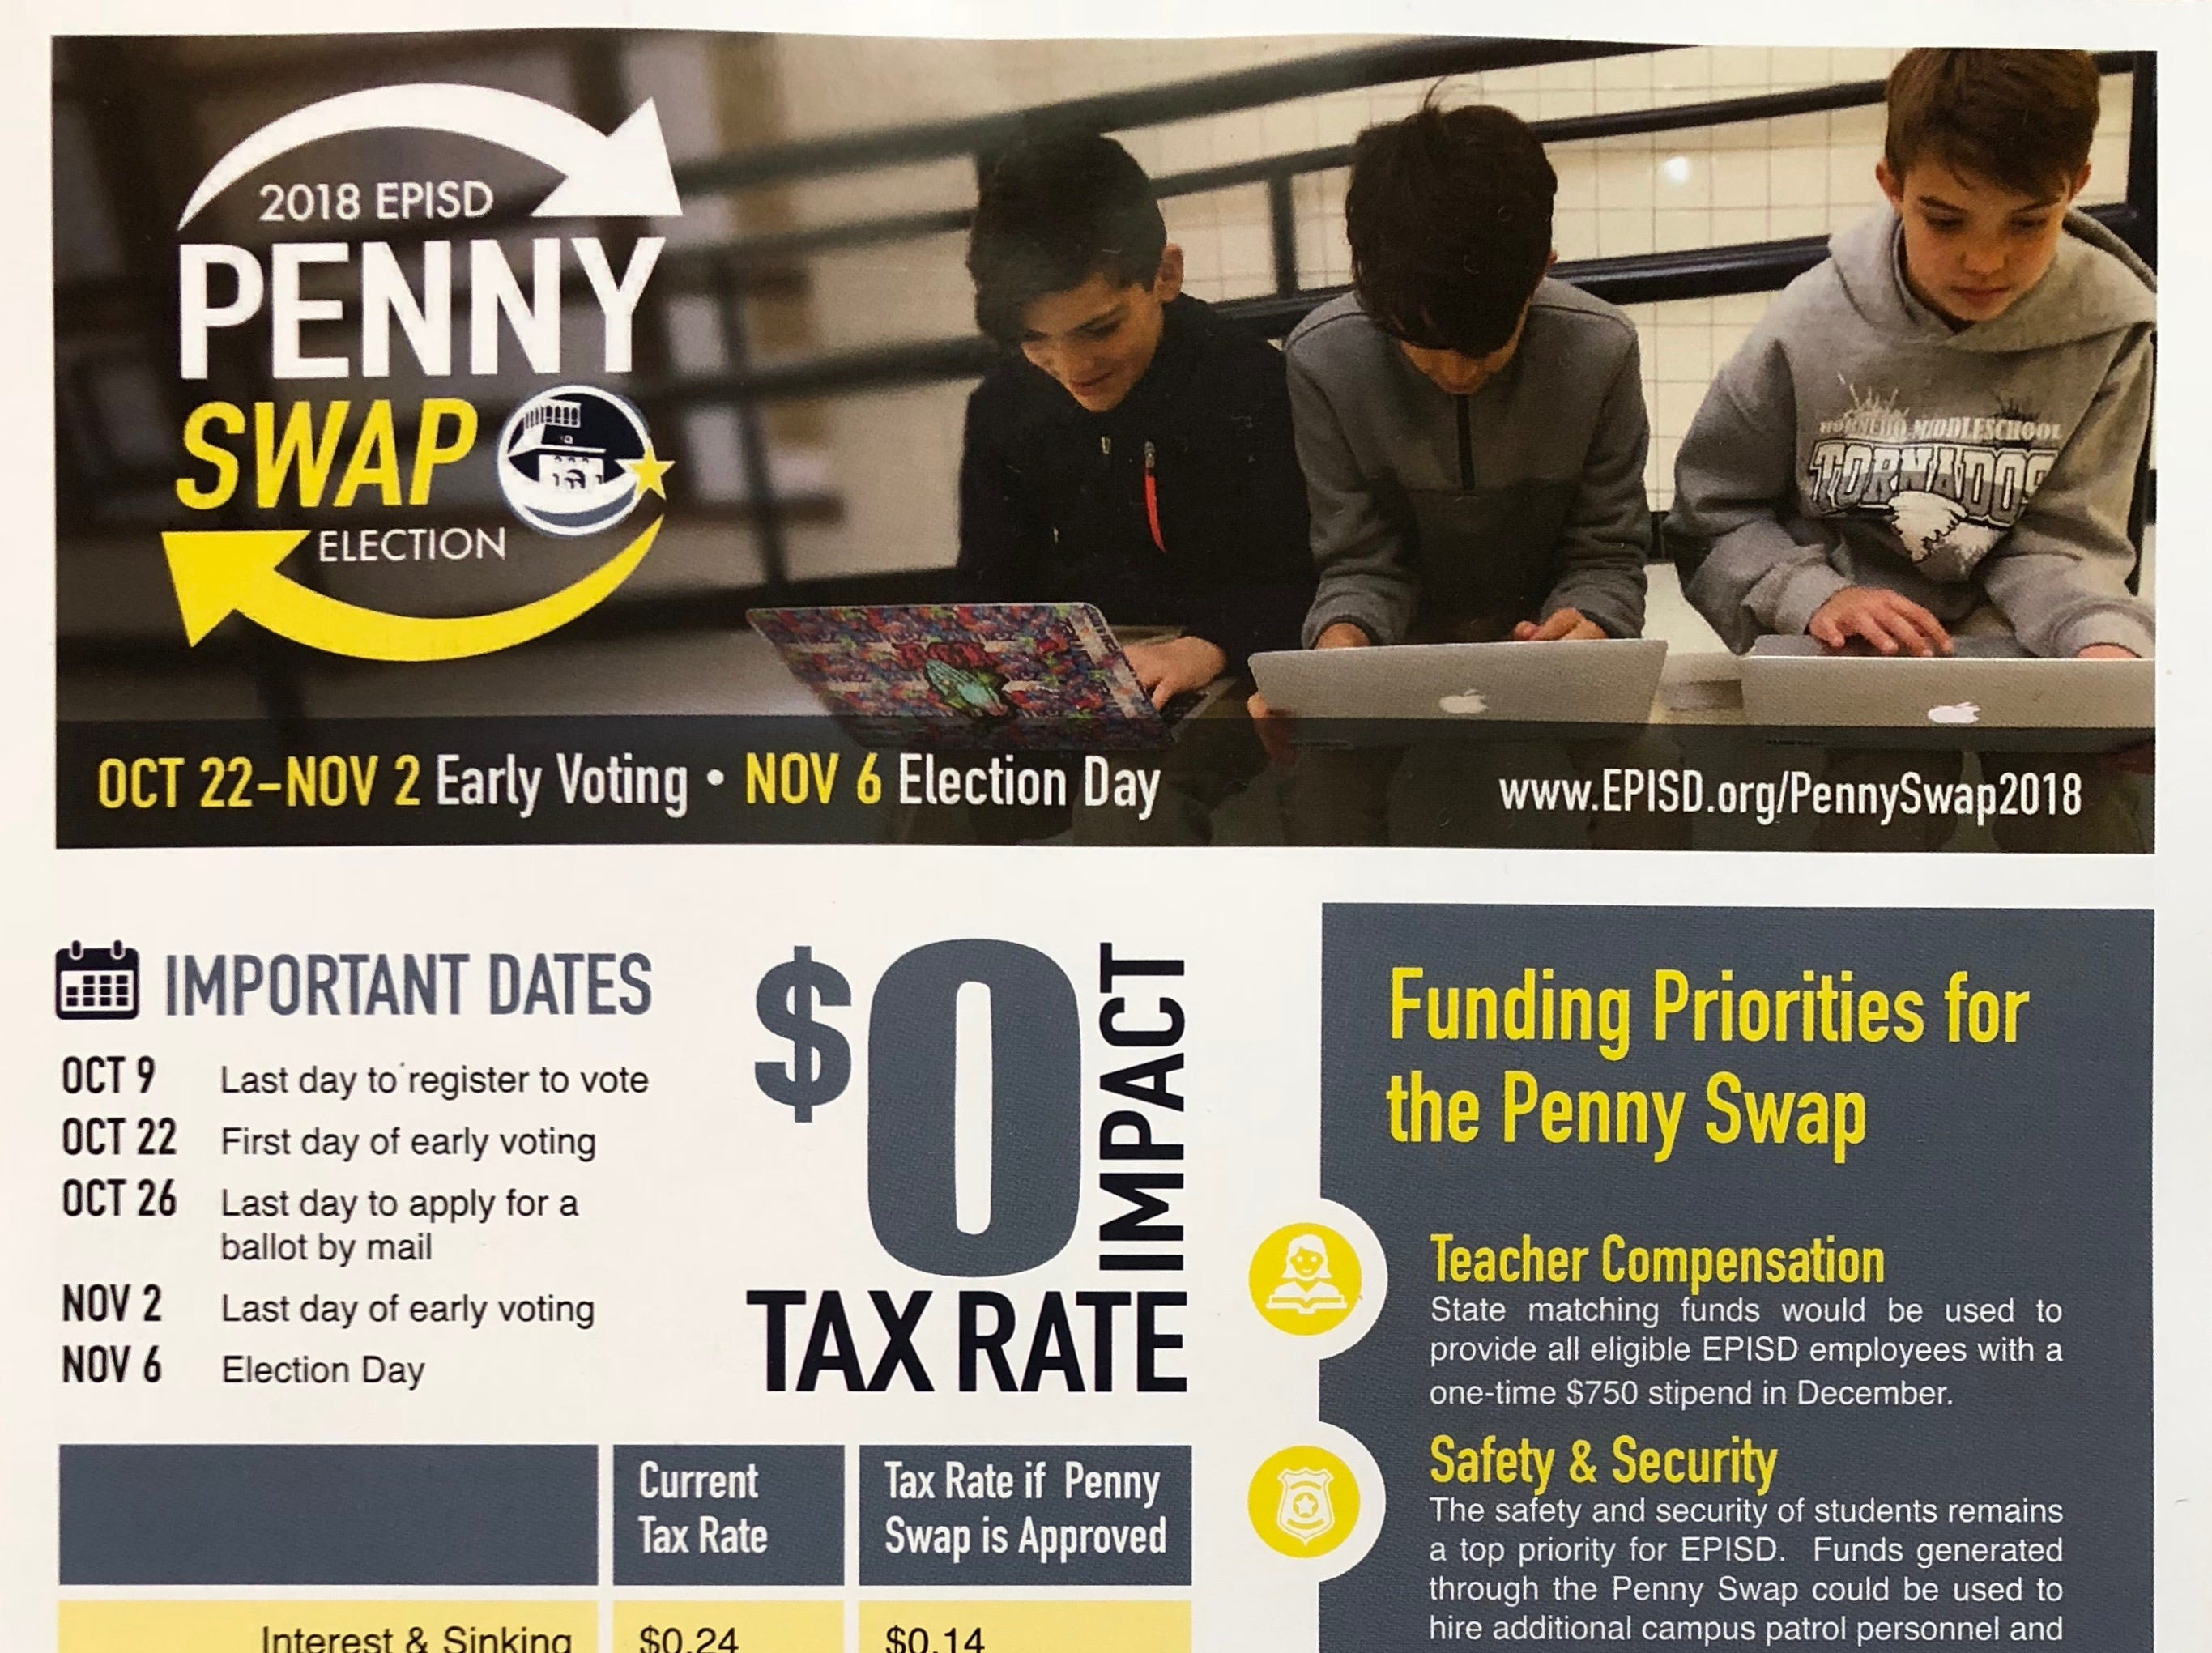 3 El Paso County school districts to get $11.3M extra from Texas after penny swap election